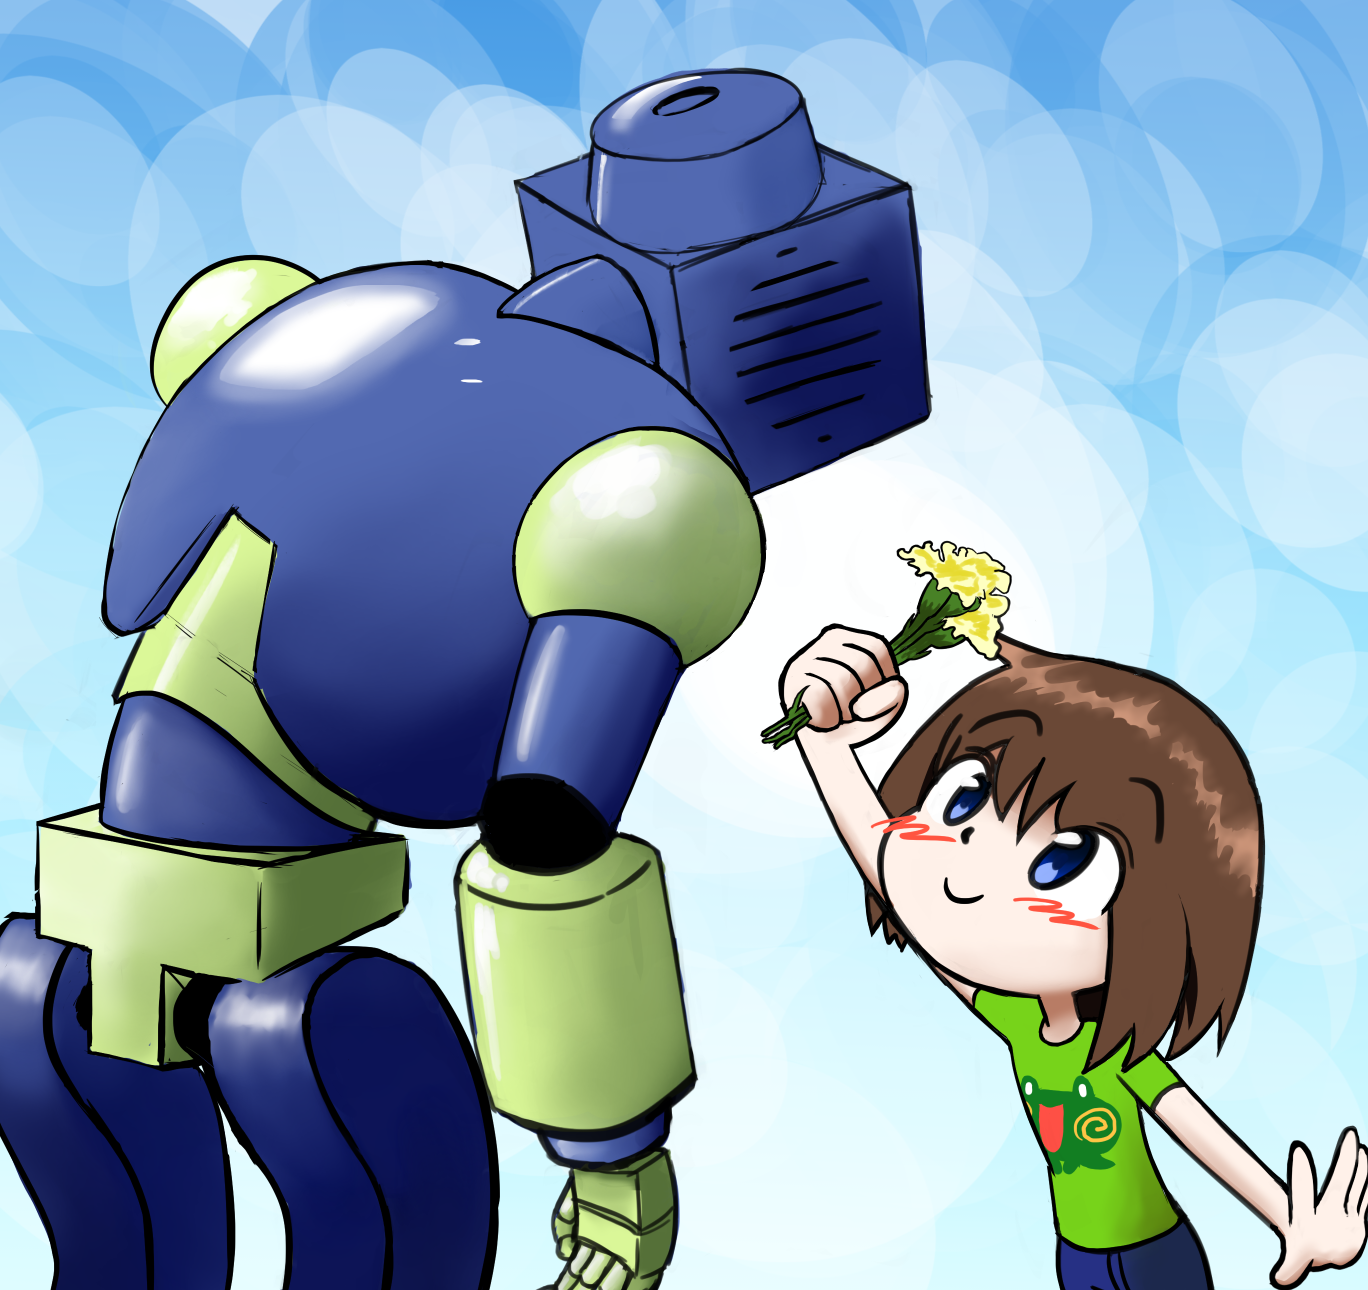 Lily makes friends with a robot